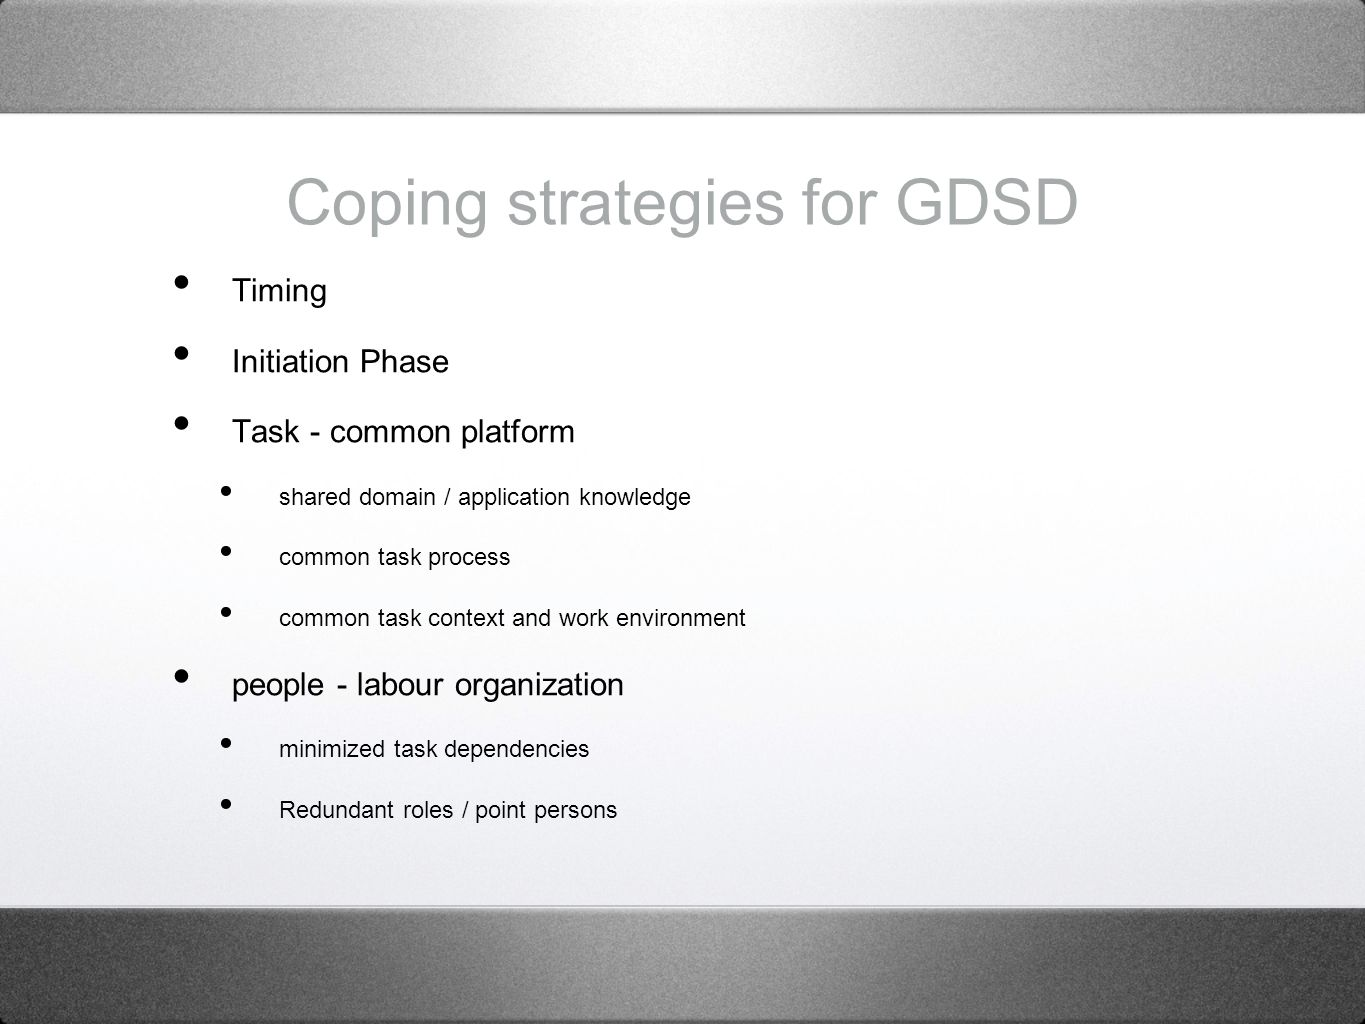 Coping strategies for GDSD Timing Initiation Phase Task - common platform shared domain / application knowledge common task process common task context and work environment people - labour organization minimized task dependencies Redundant roles / point persons